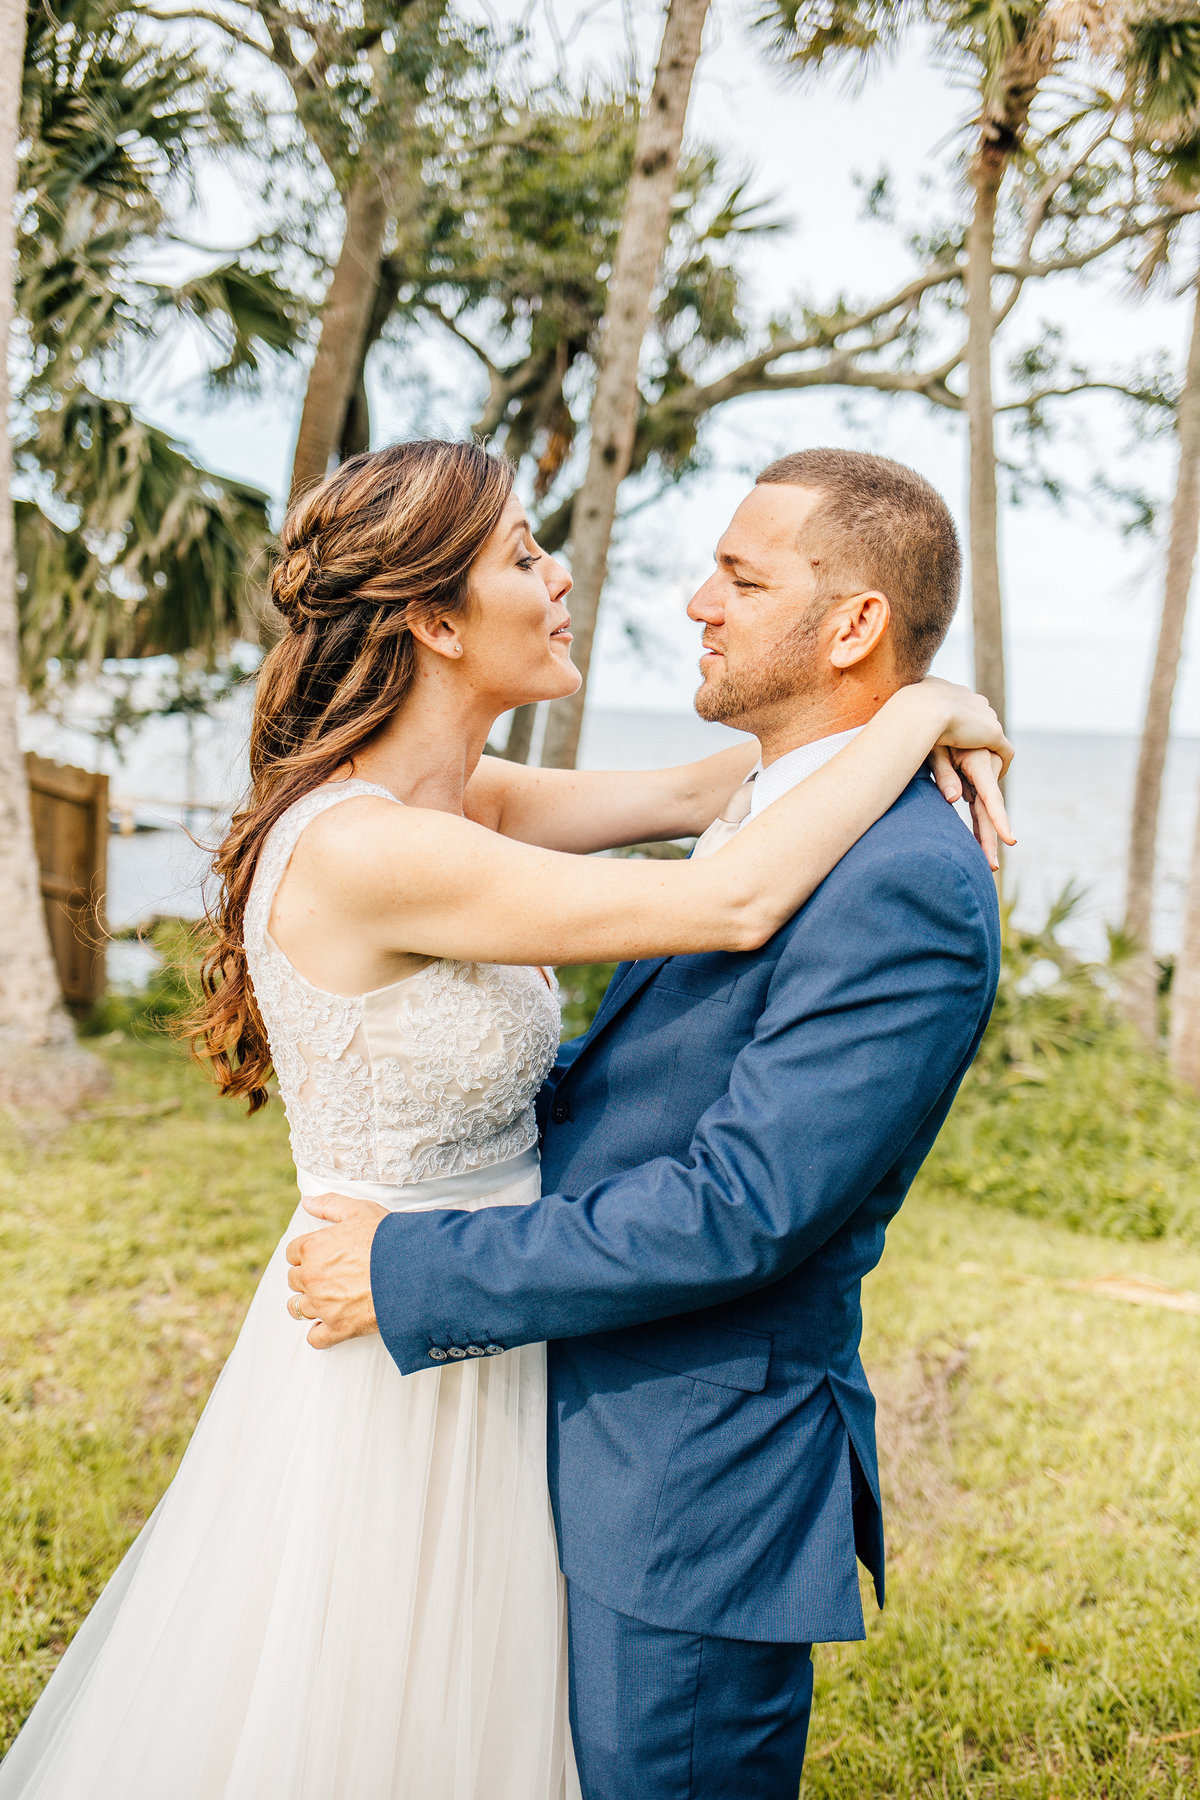 Kimberly_Hoyle_Photography_Kemp_Titusville_Florida_Wedding-11